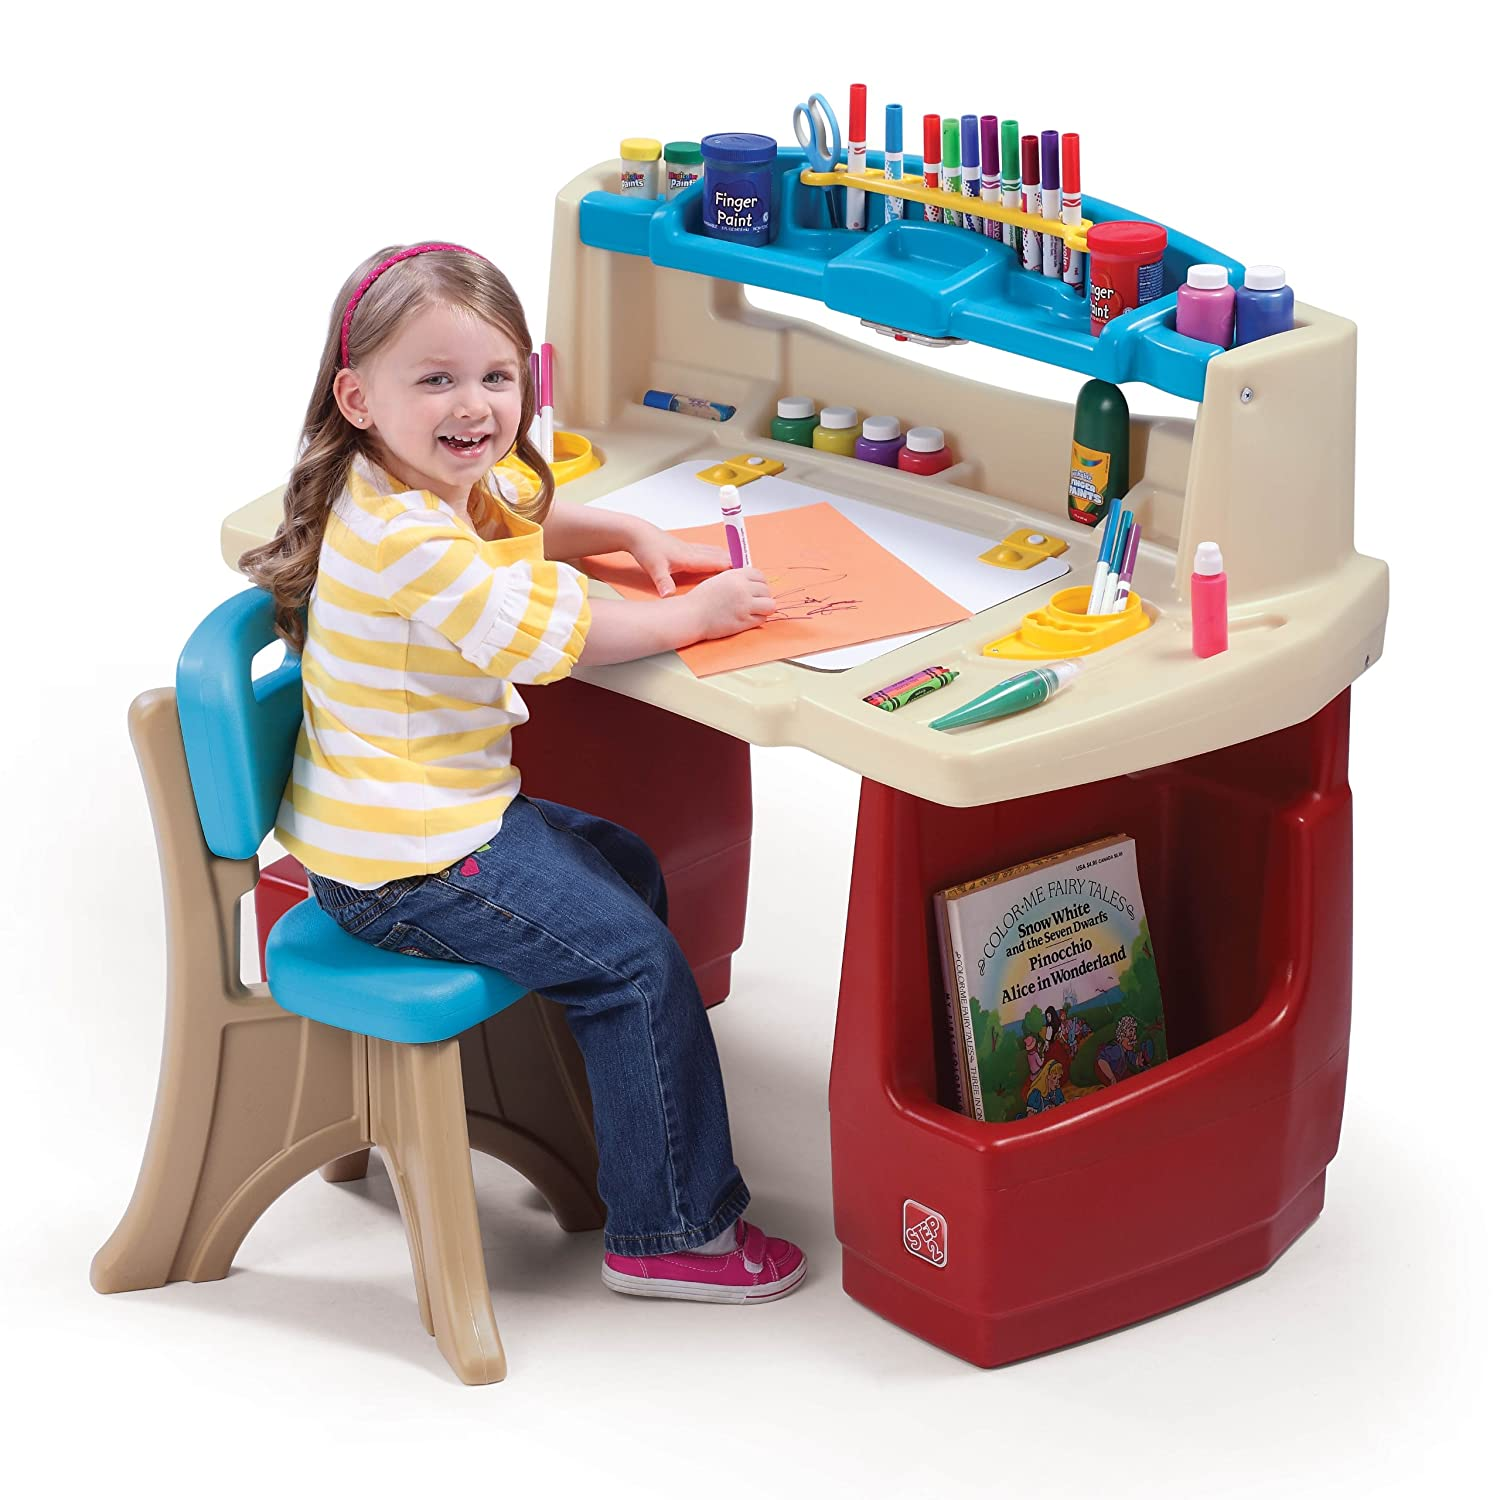 Kids art desk set deluxe playroom activity craft storage for Arts and crafts sets for kids